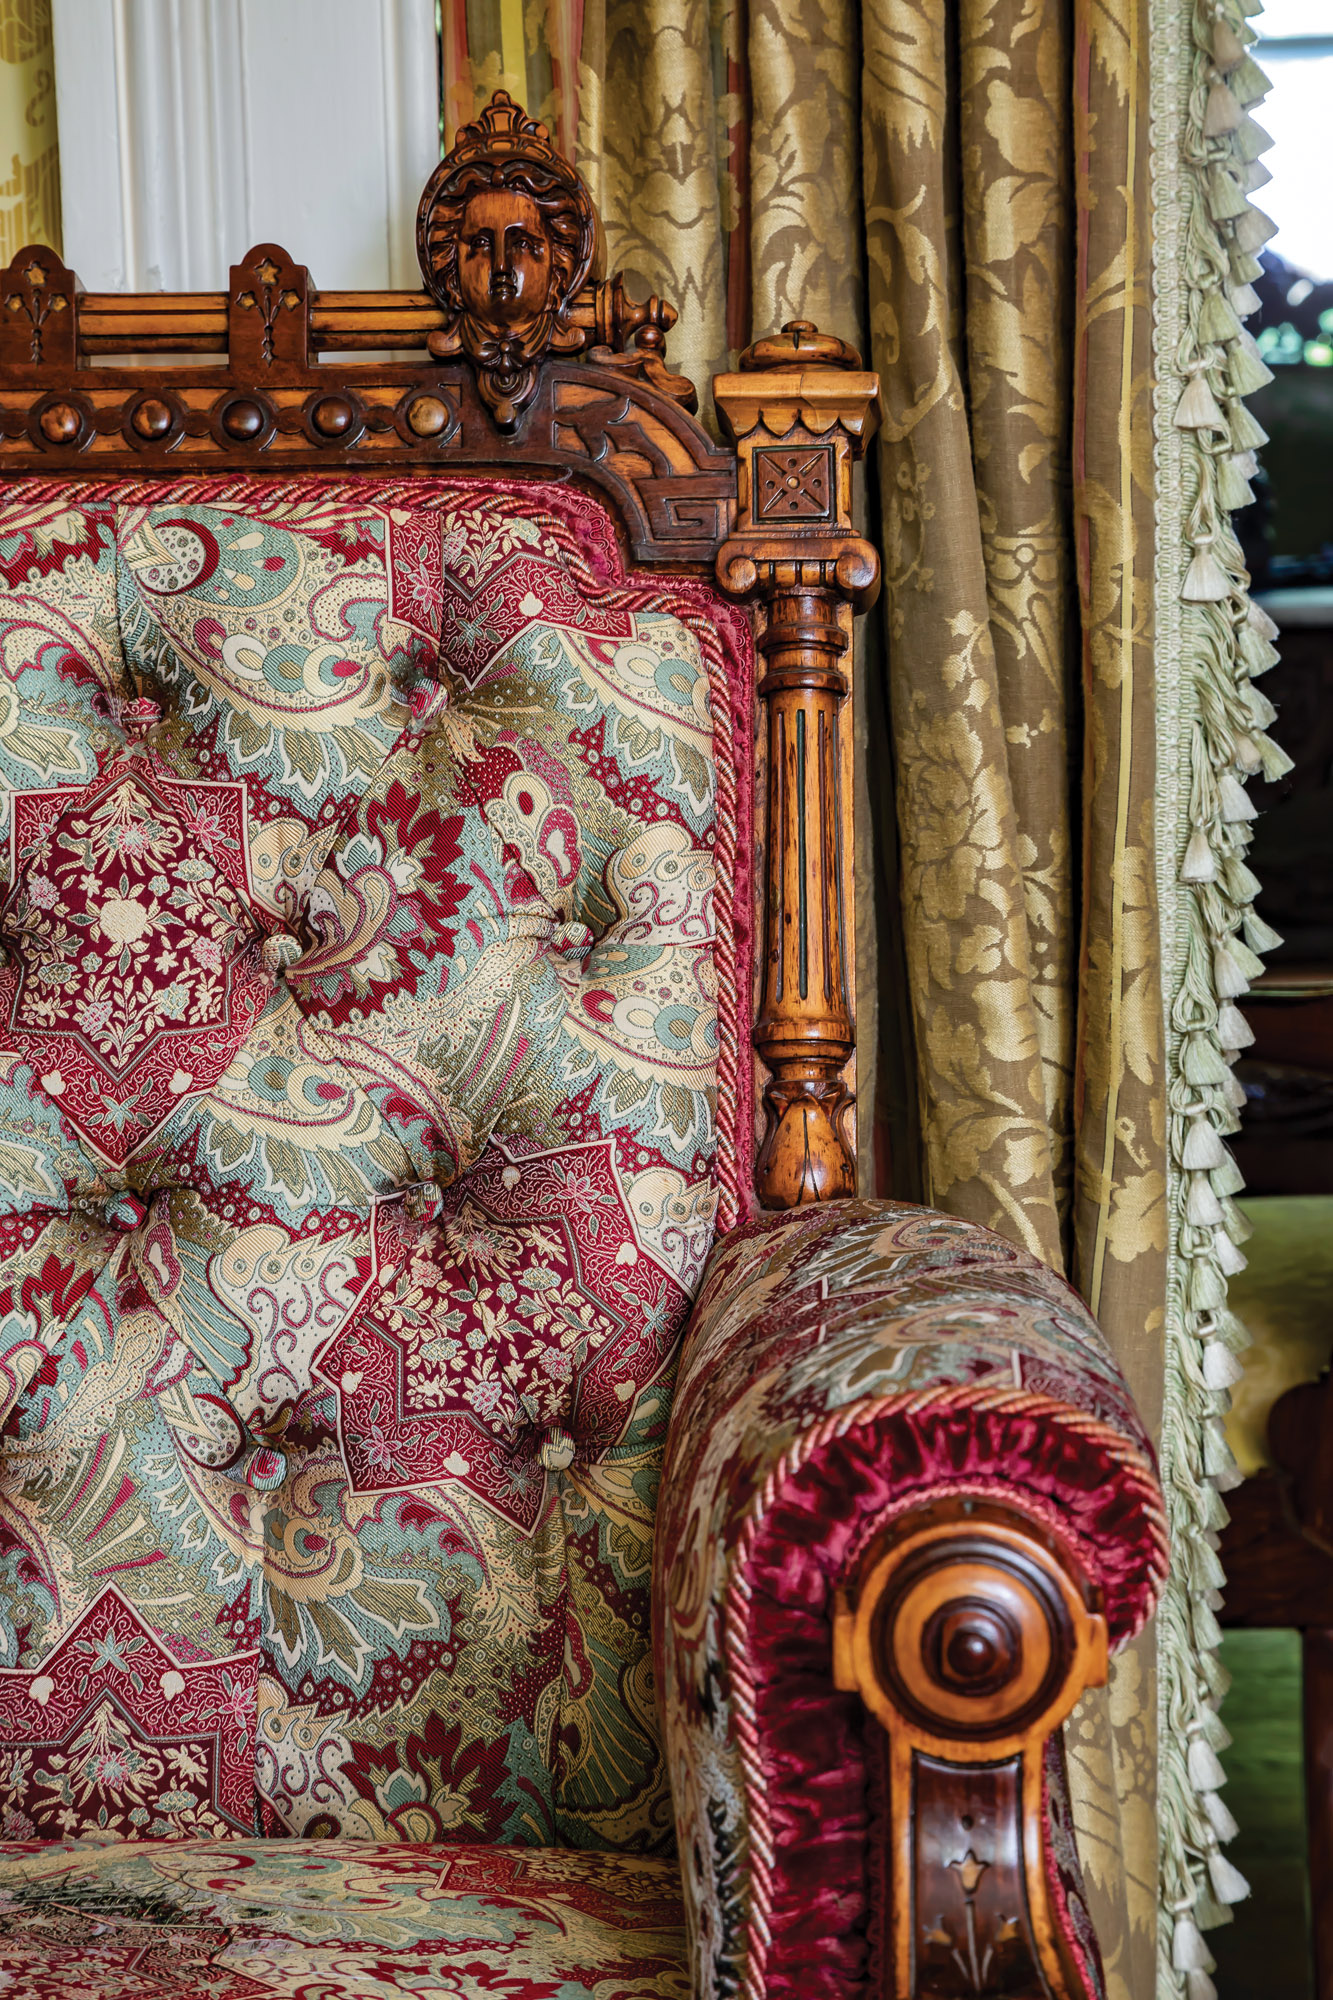 The library–parlor includes Renaissance Revival armchairs with carved crests.